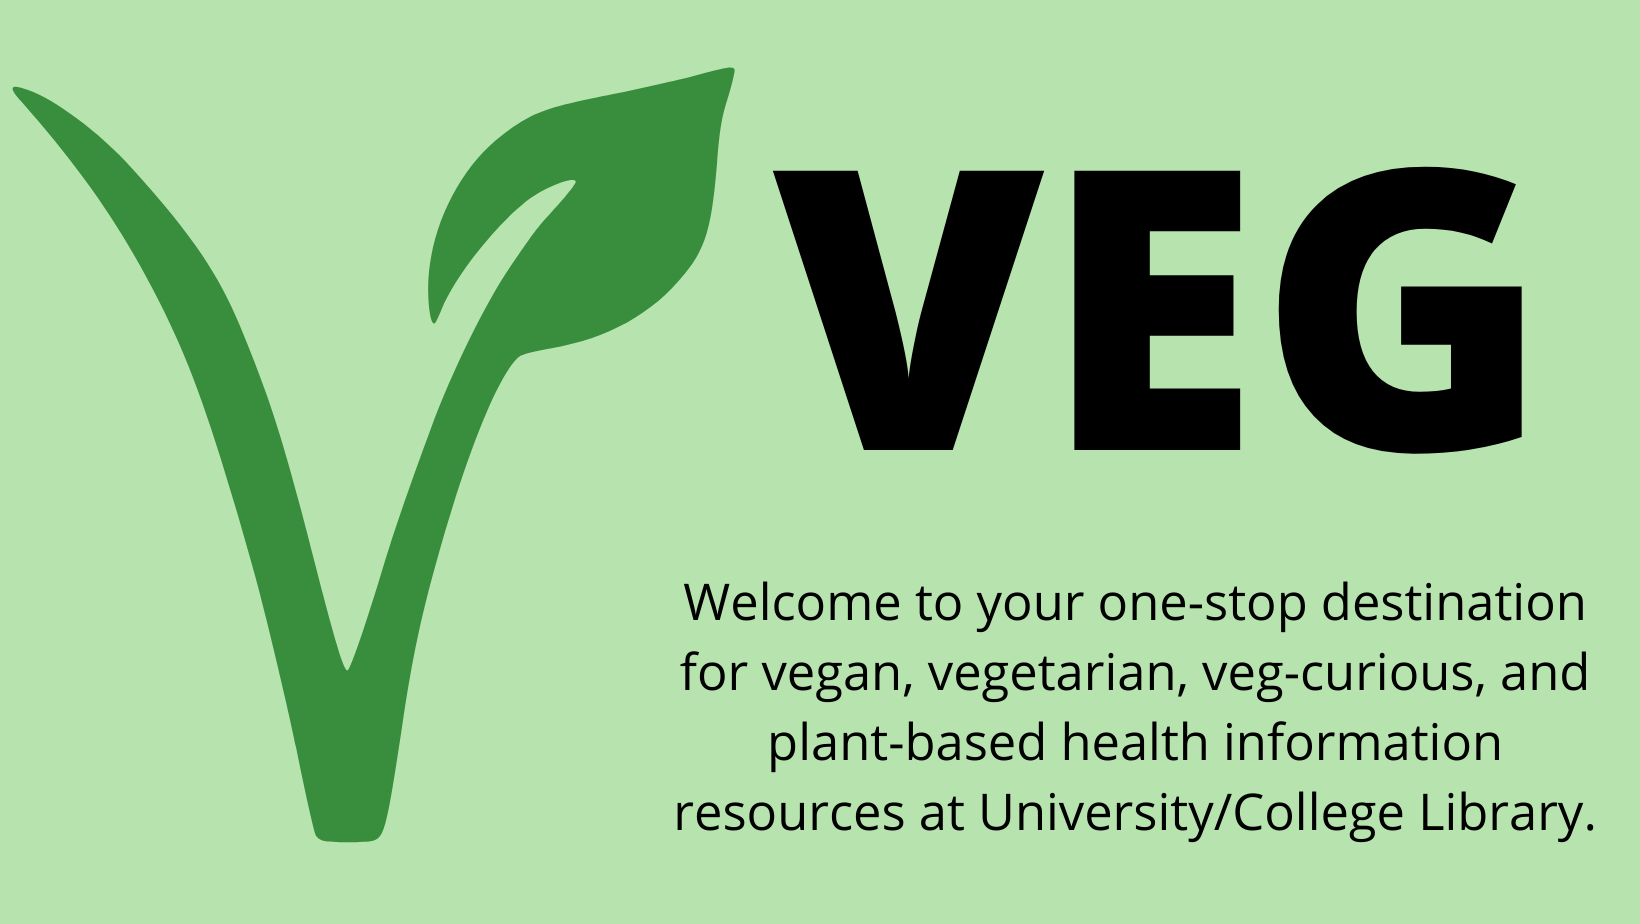 Welcome to your one-stop destination for vegan, vegetarian, veg-curious, and plant-based health information resources at University/College Library.